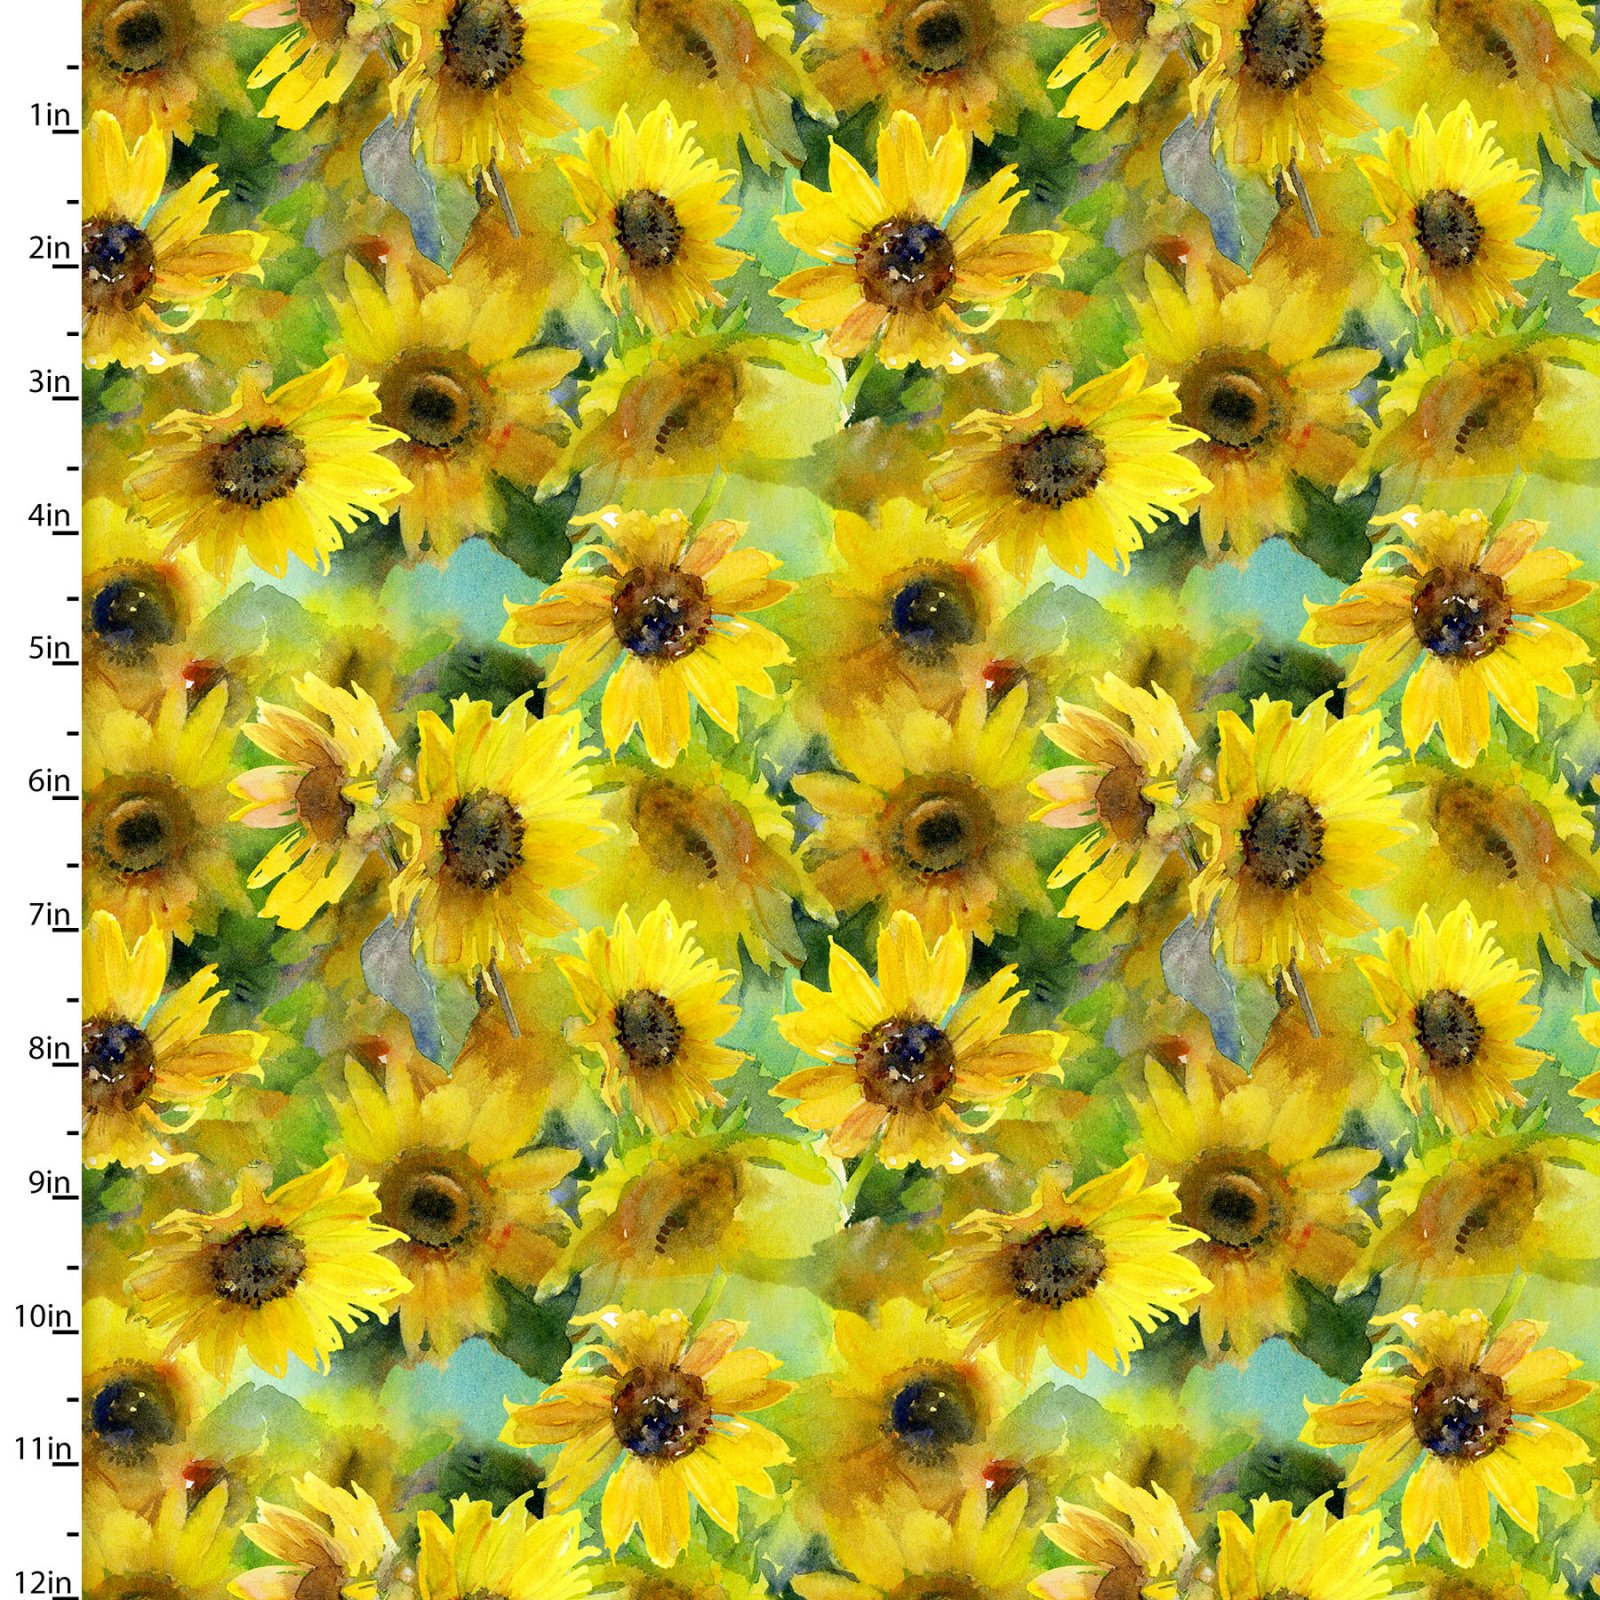 Sunflower Stampede - Sunflowers